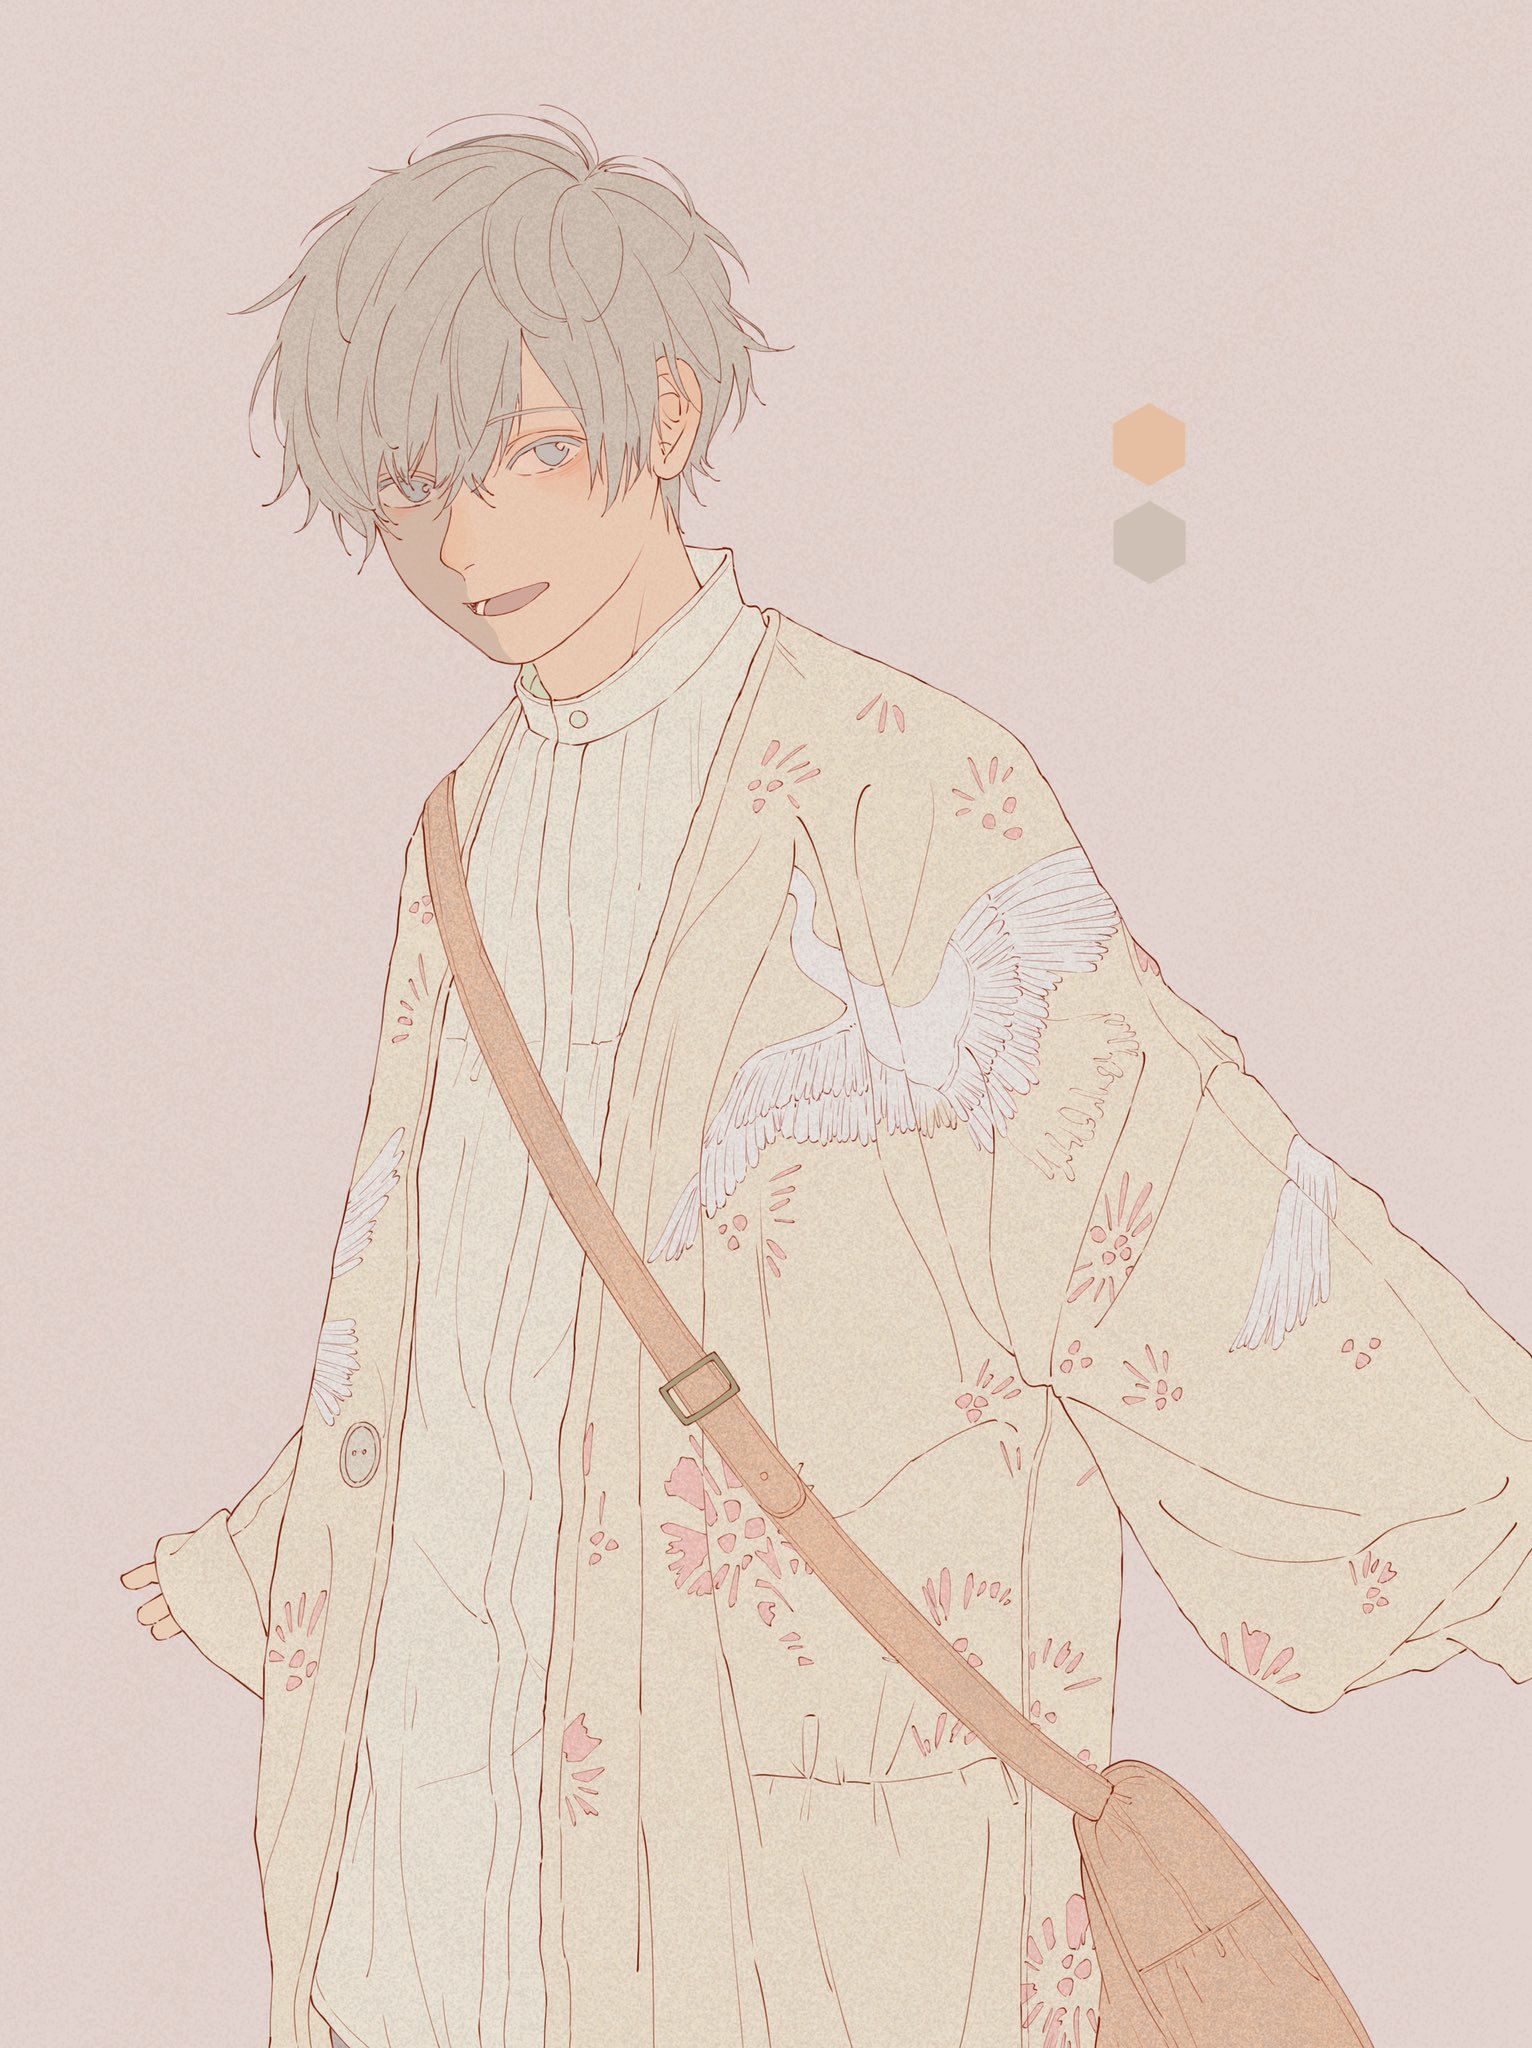 Pin By Briptide On Anime Drawings Cute Anime Character Boy Art Anime Drawings Boy